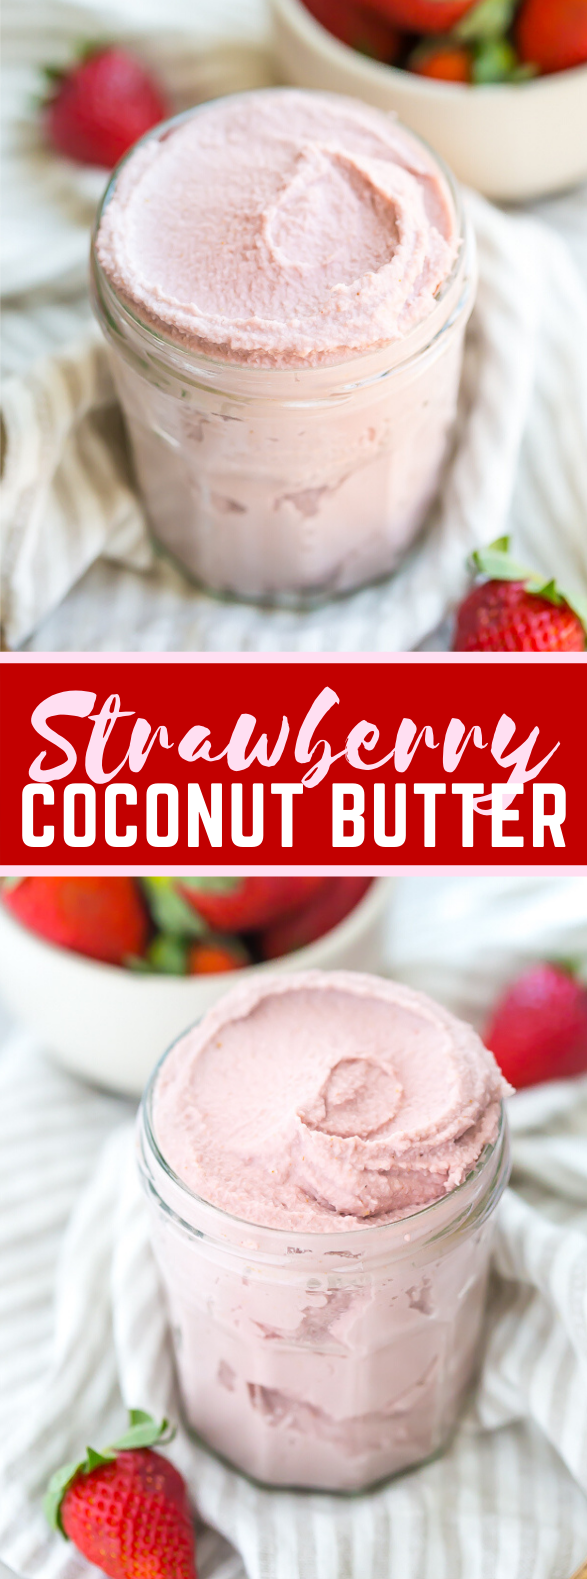 Strawberry Coconut Butter #desserts #appetizers